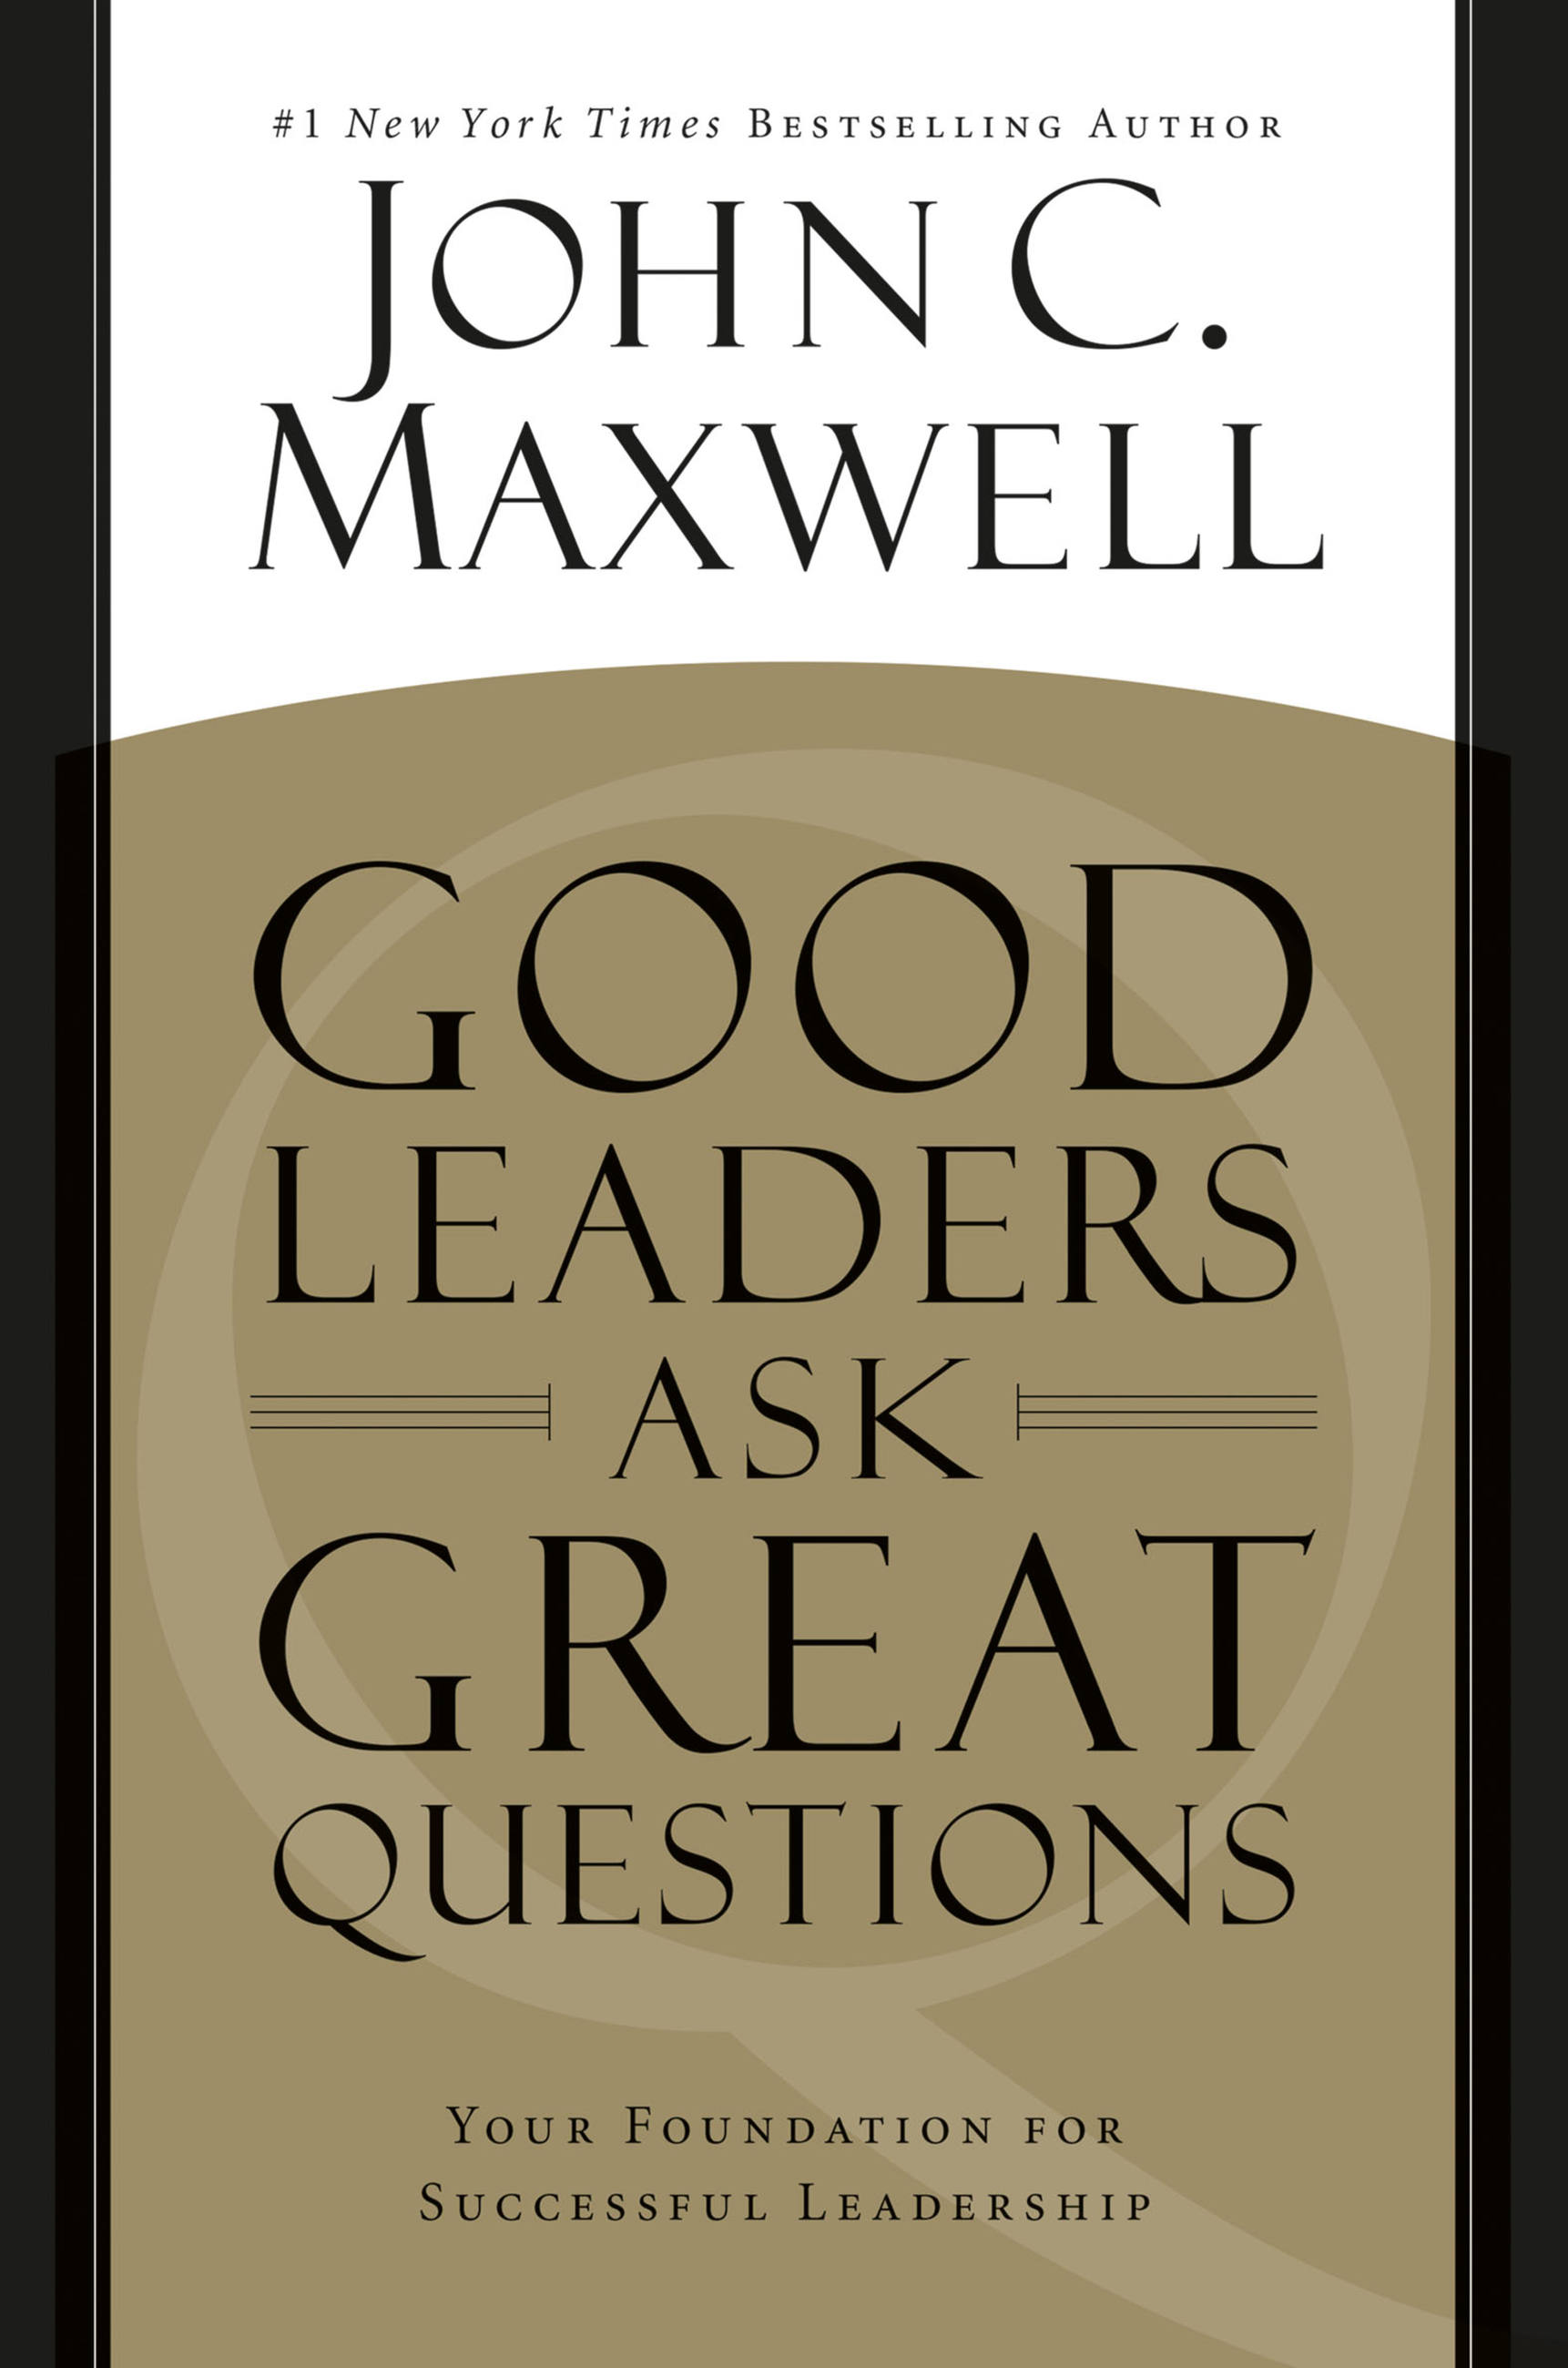 Download Ebook Good Leaders Ask Great Questions by John C. Maxwell Pdf